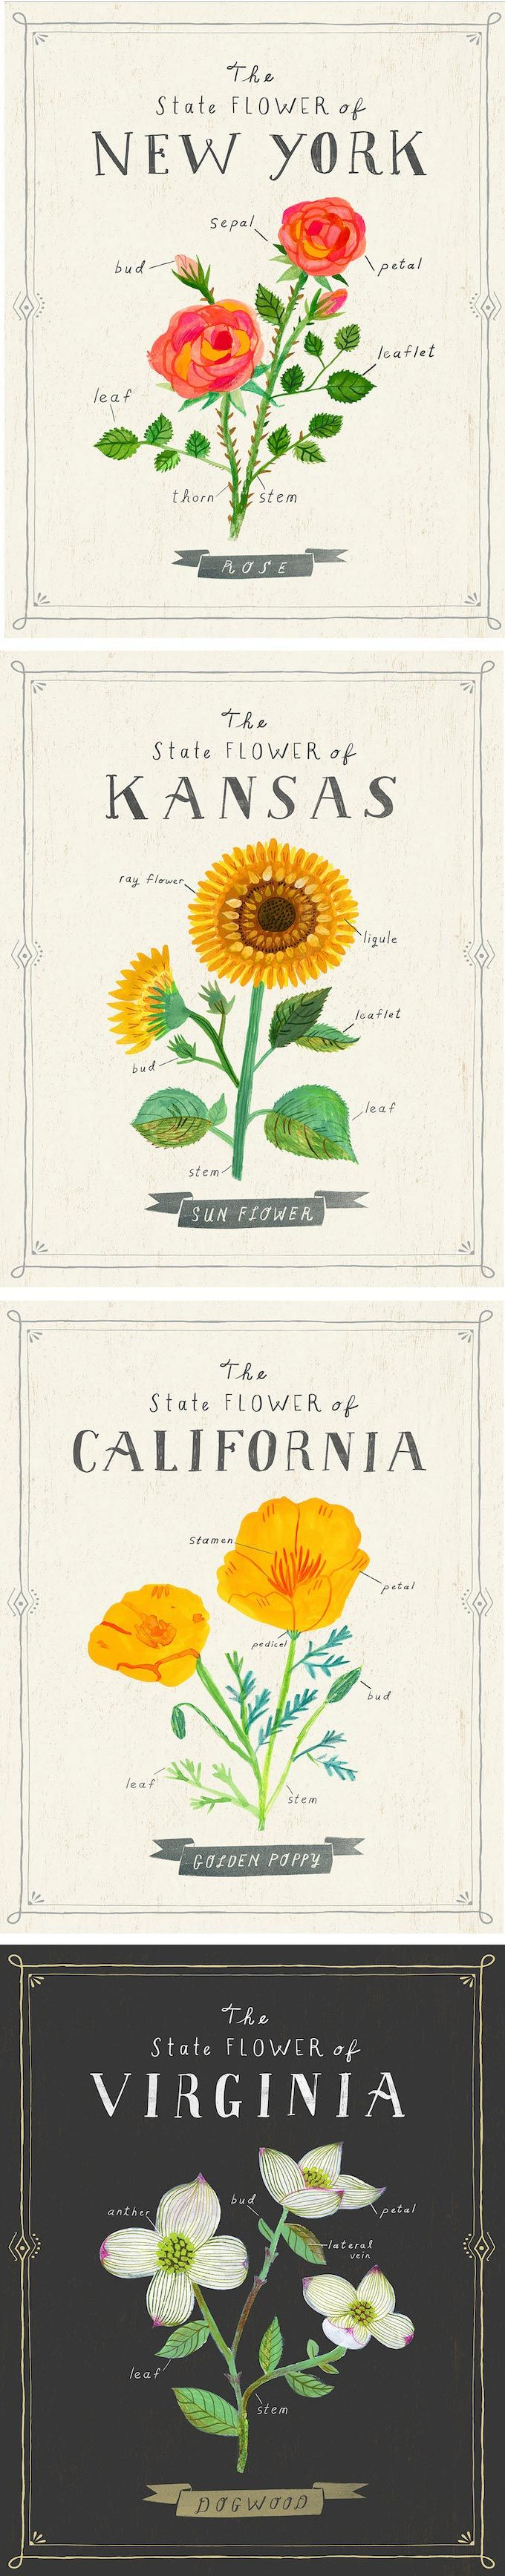 Sarah Walsh draws state flowers in a series that's both informative and beau…